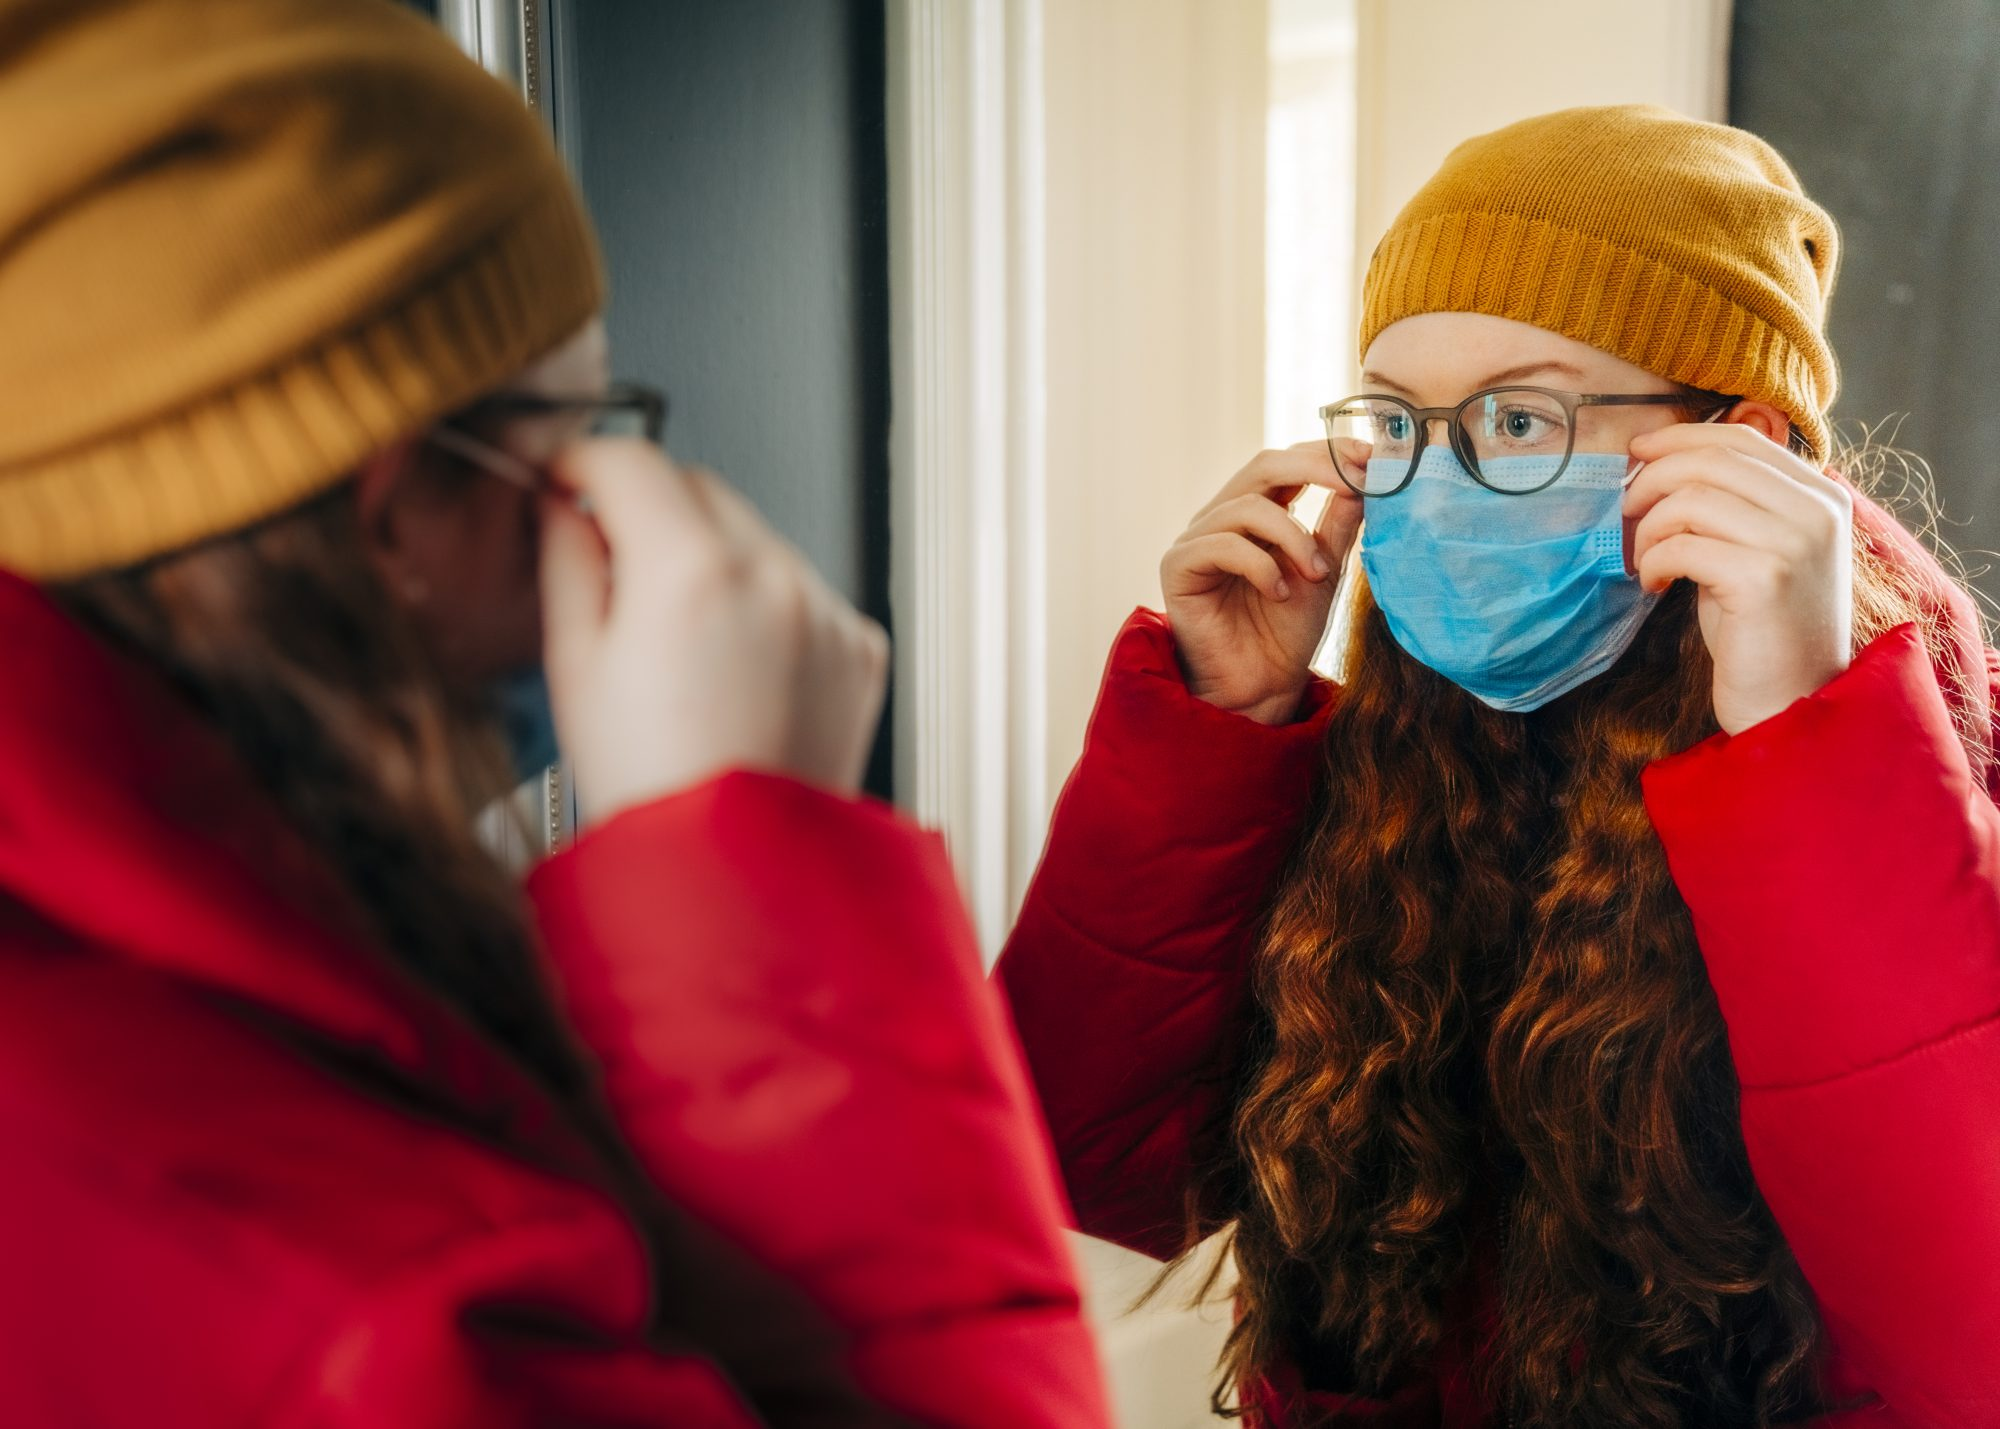 Teenage girl preparing for school wearing protective mask